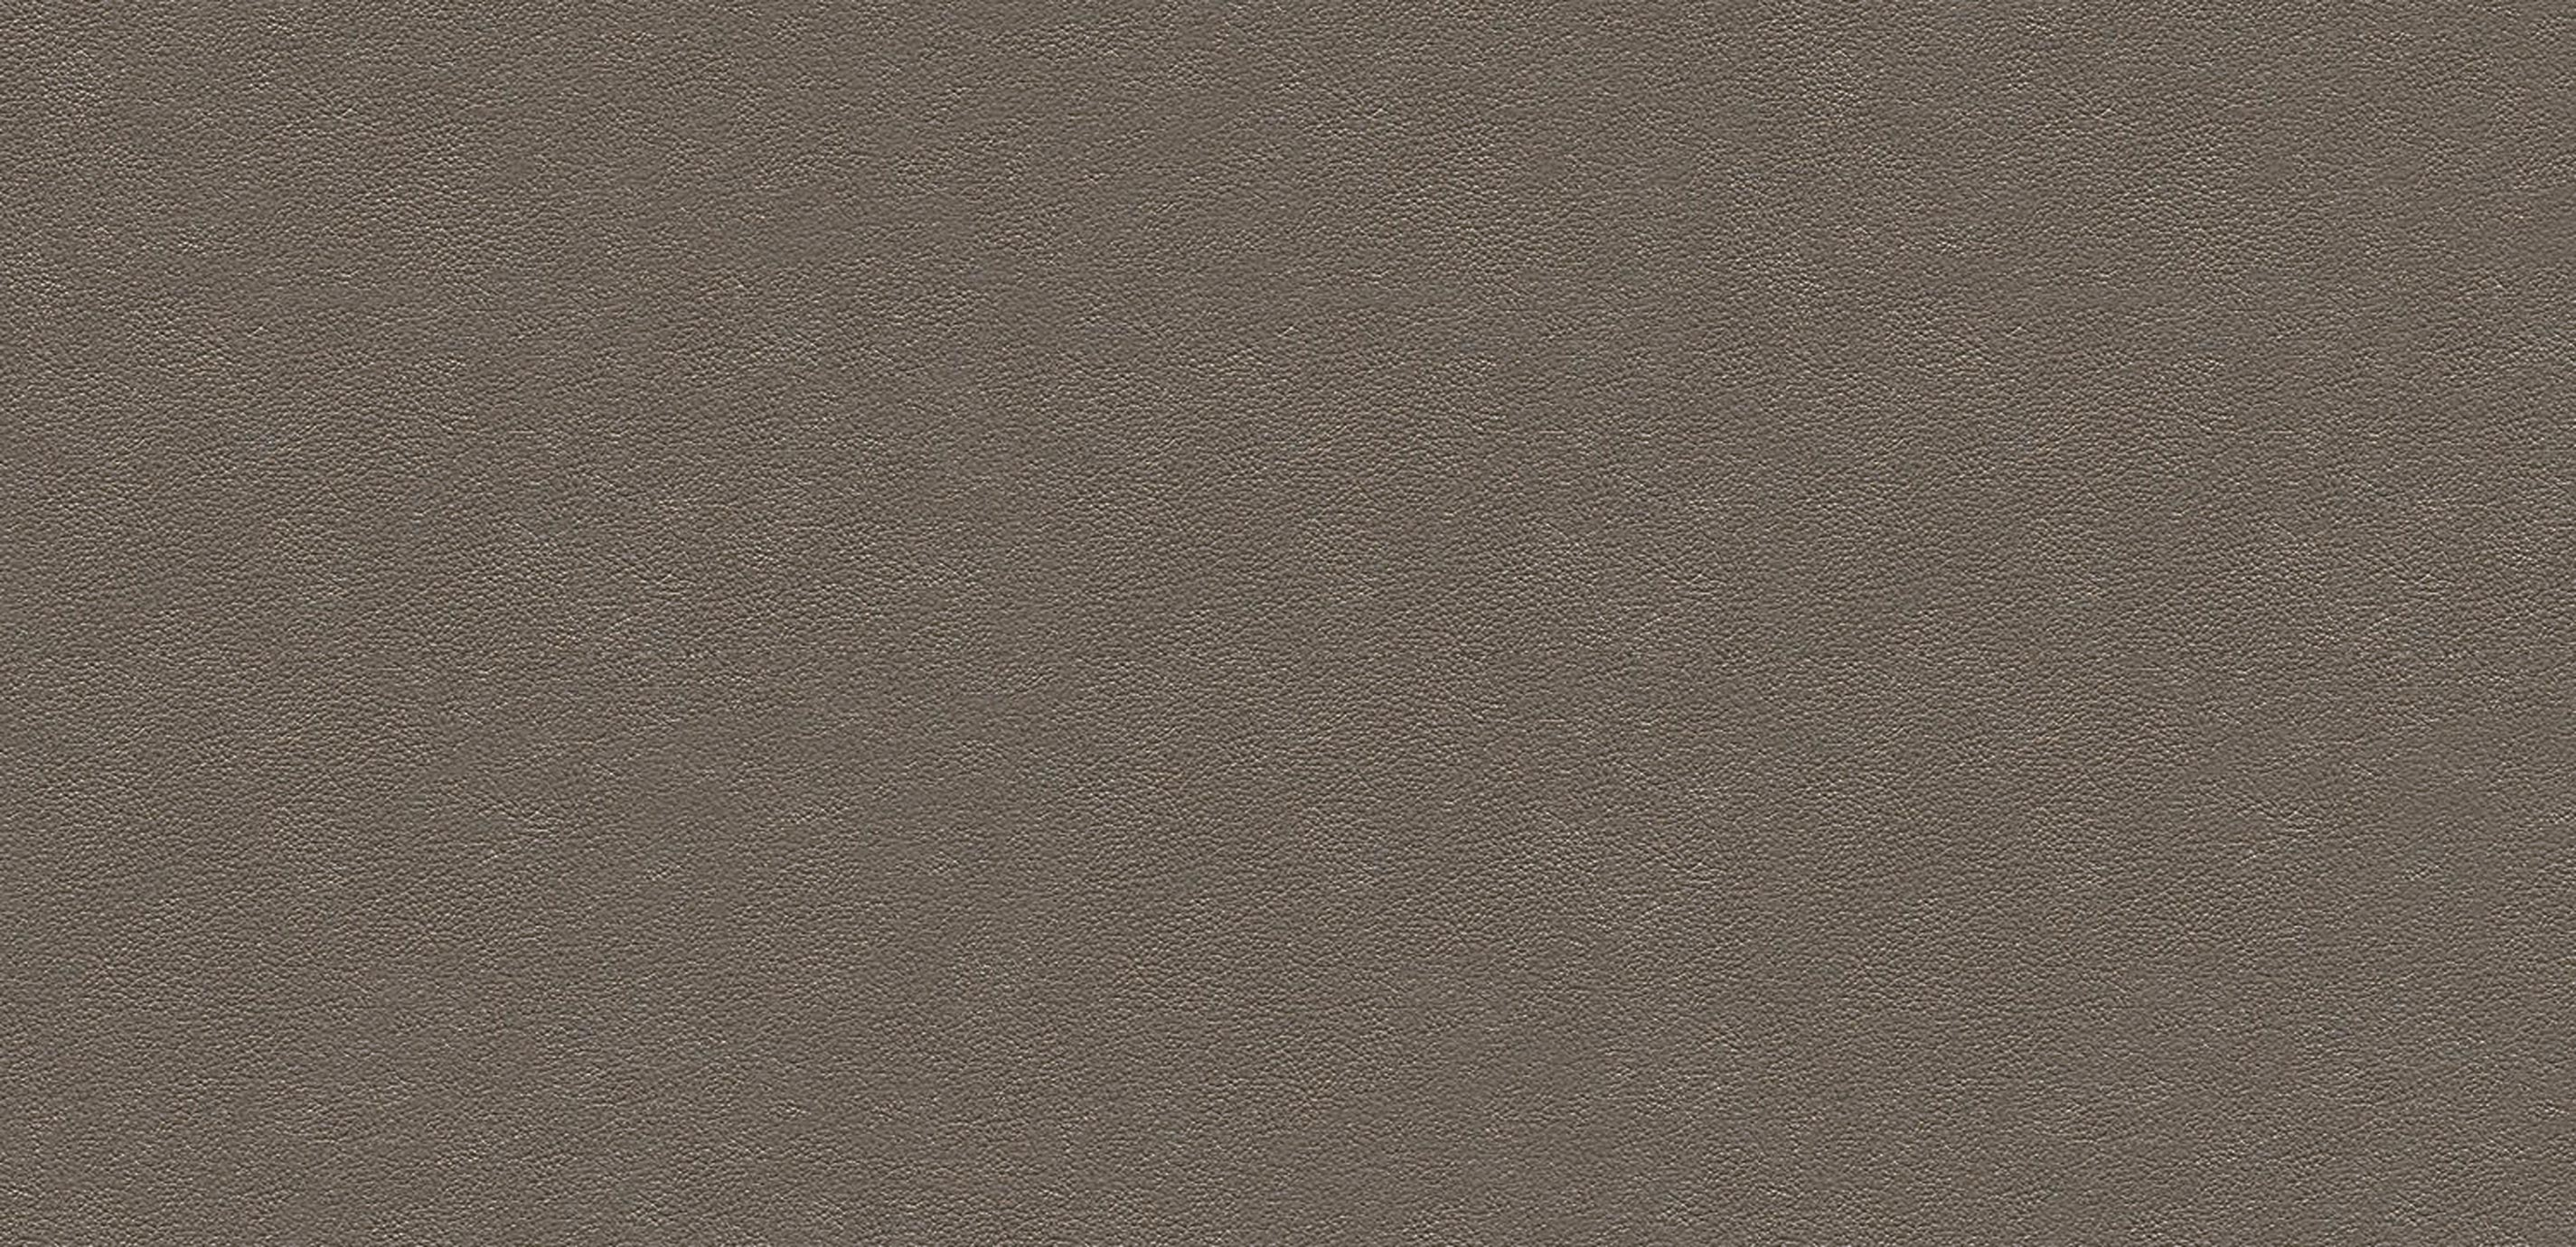 Sonora Grey Leather Swatch - Ethan Allen